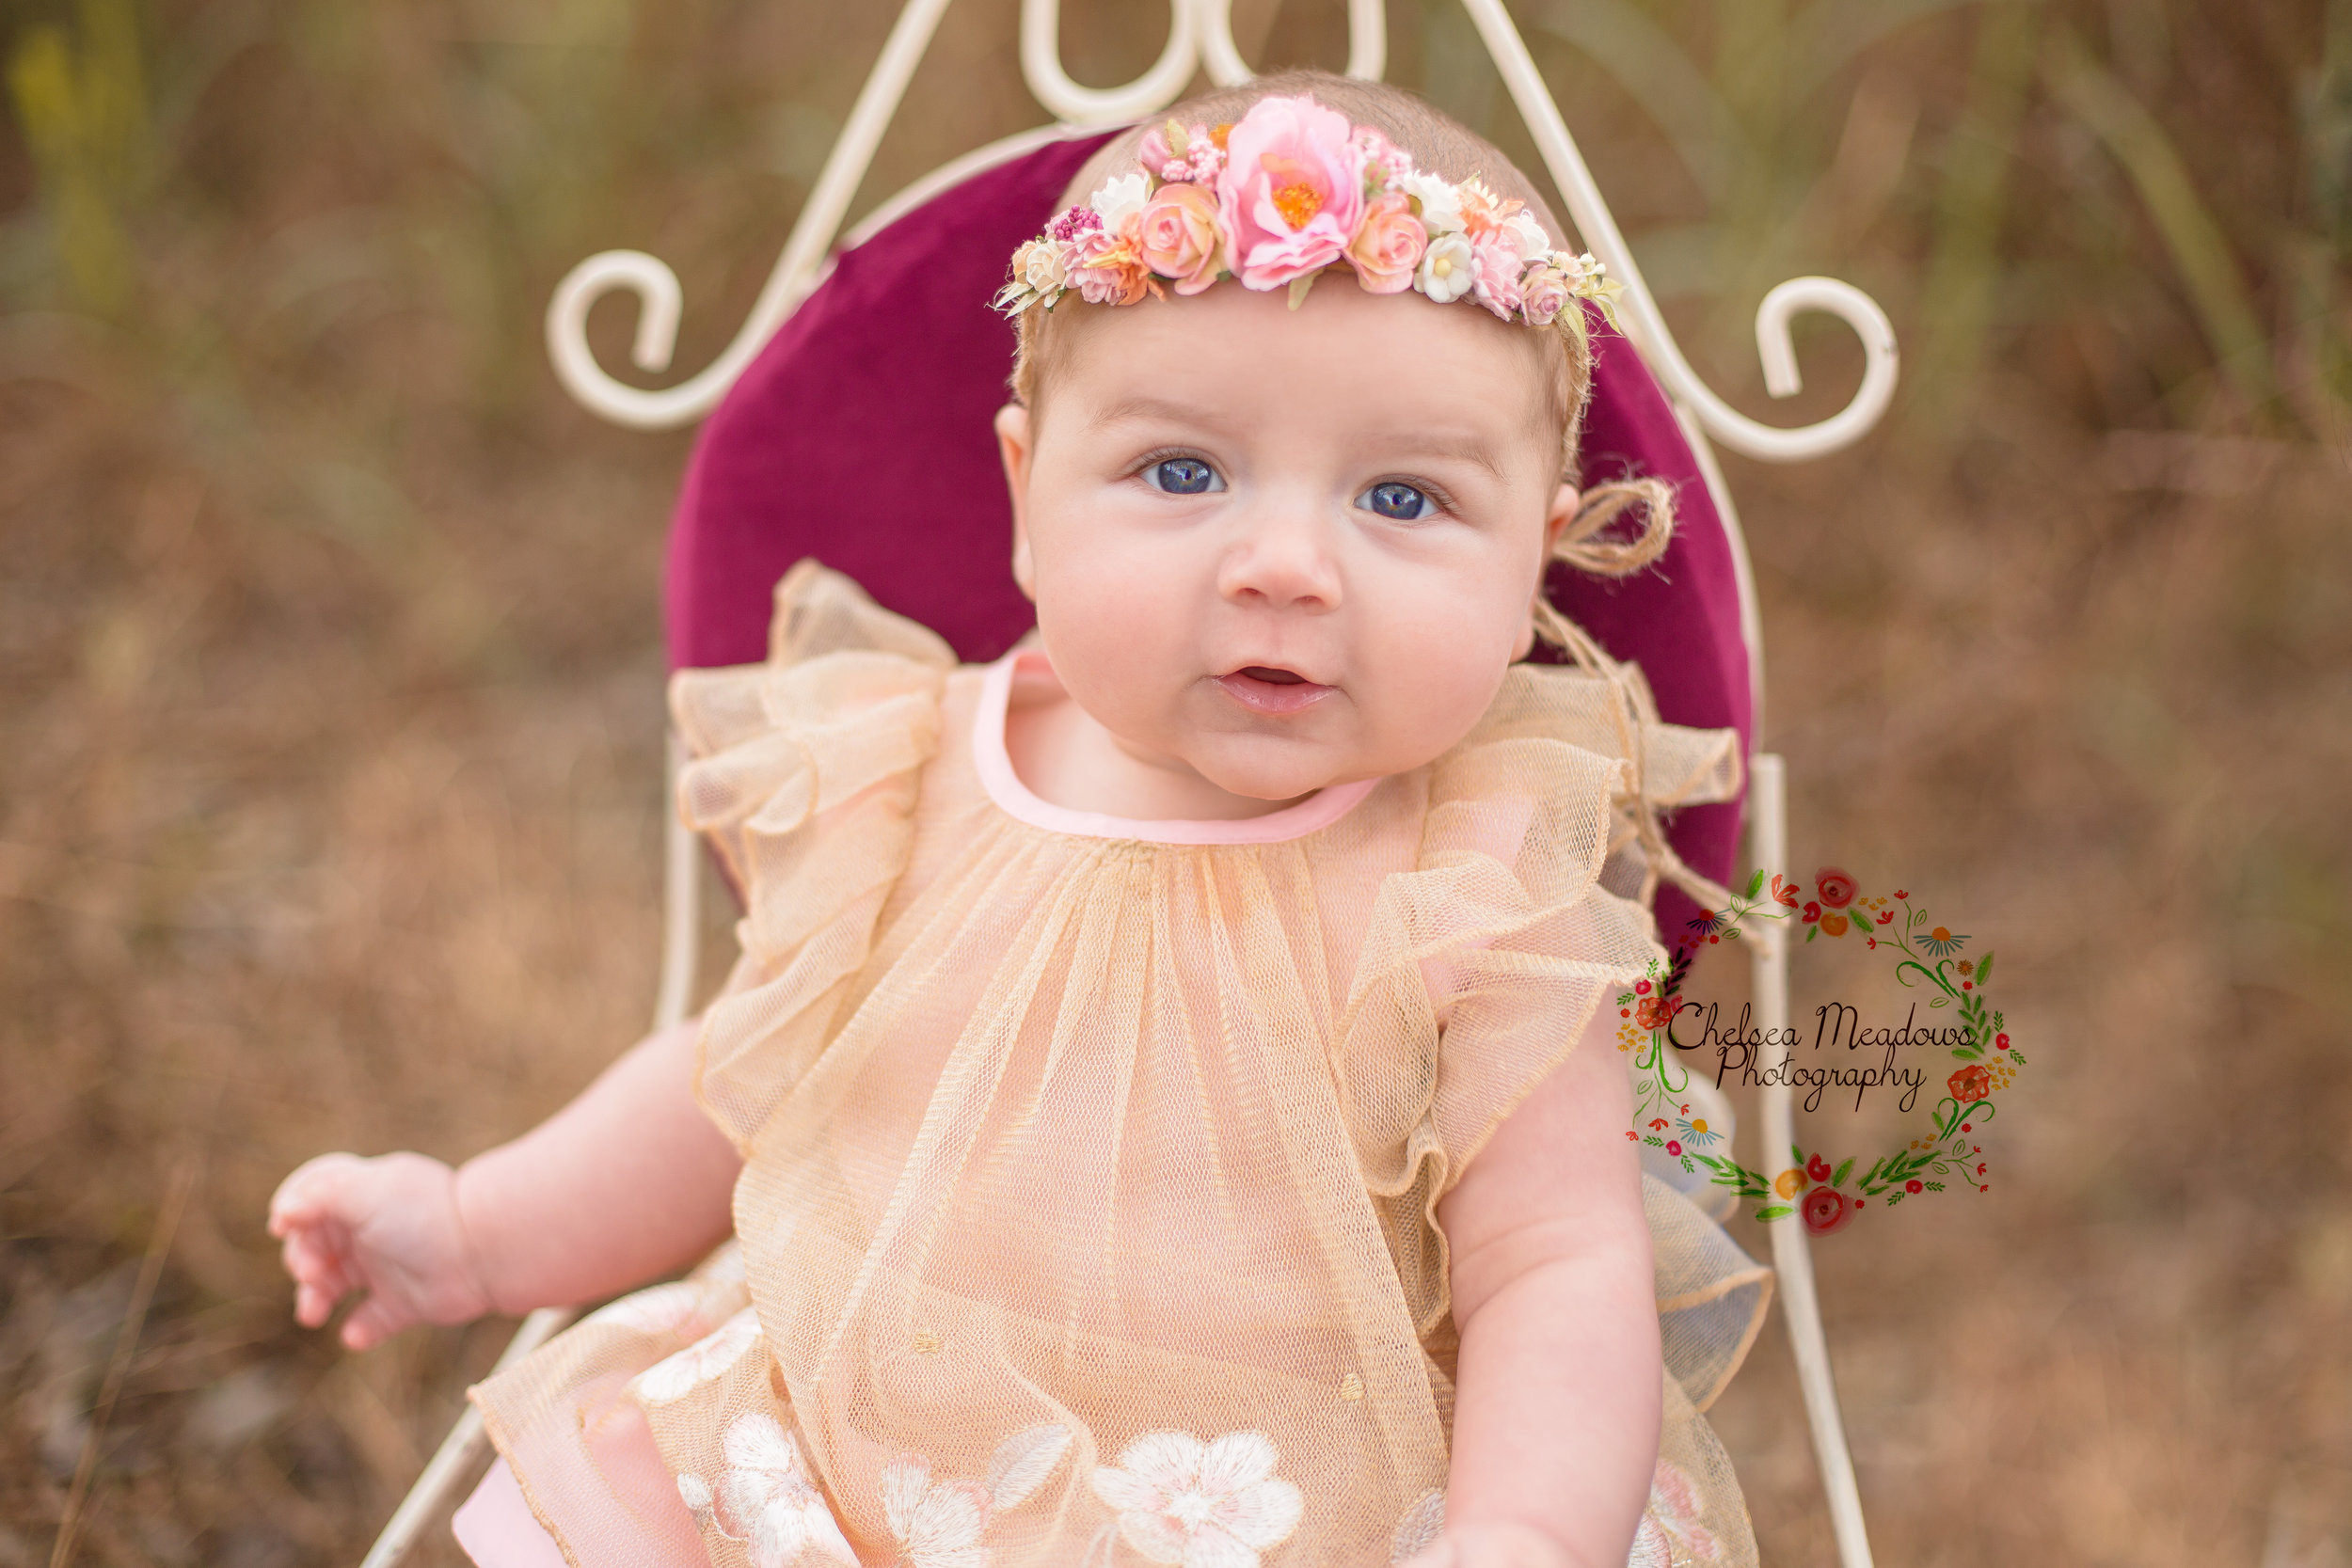 Ava's 2 Month Session - Chelsea Meadows Photography (23).jpg